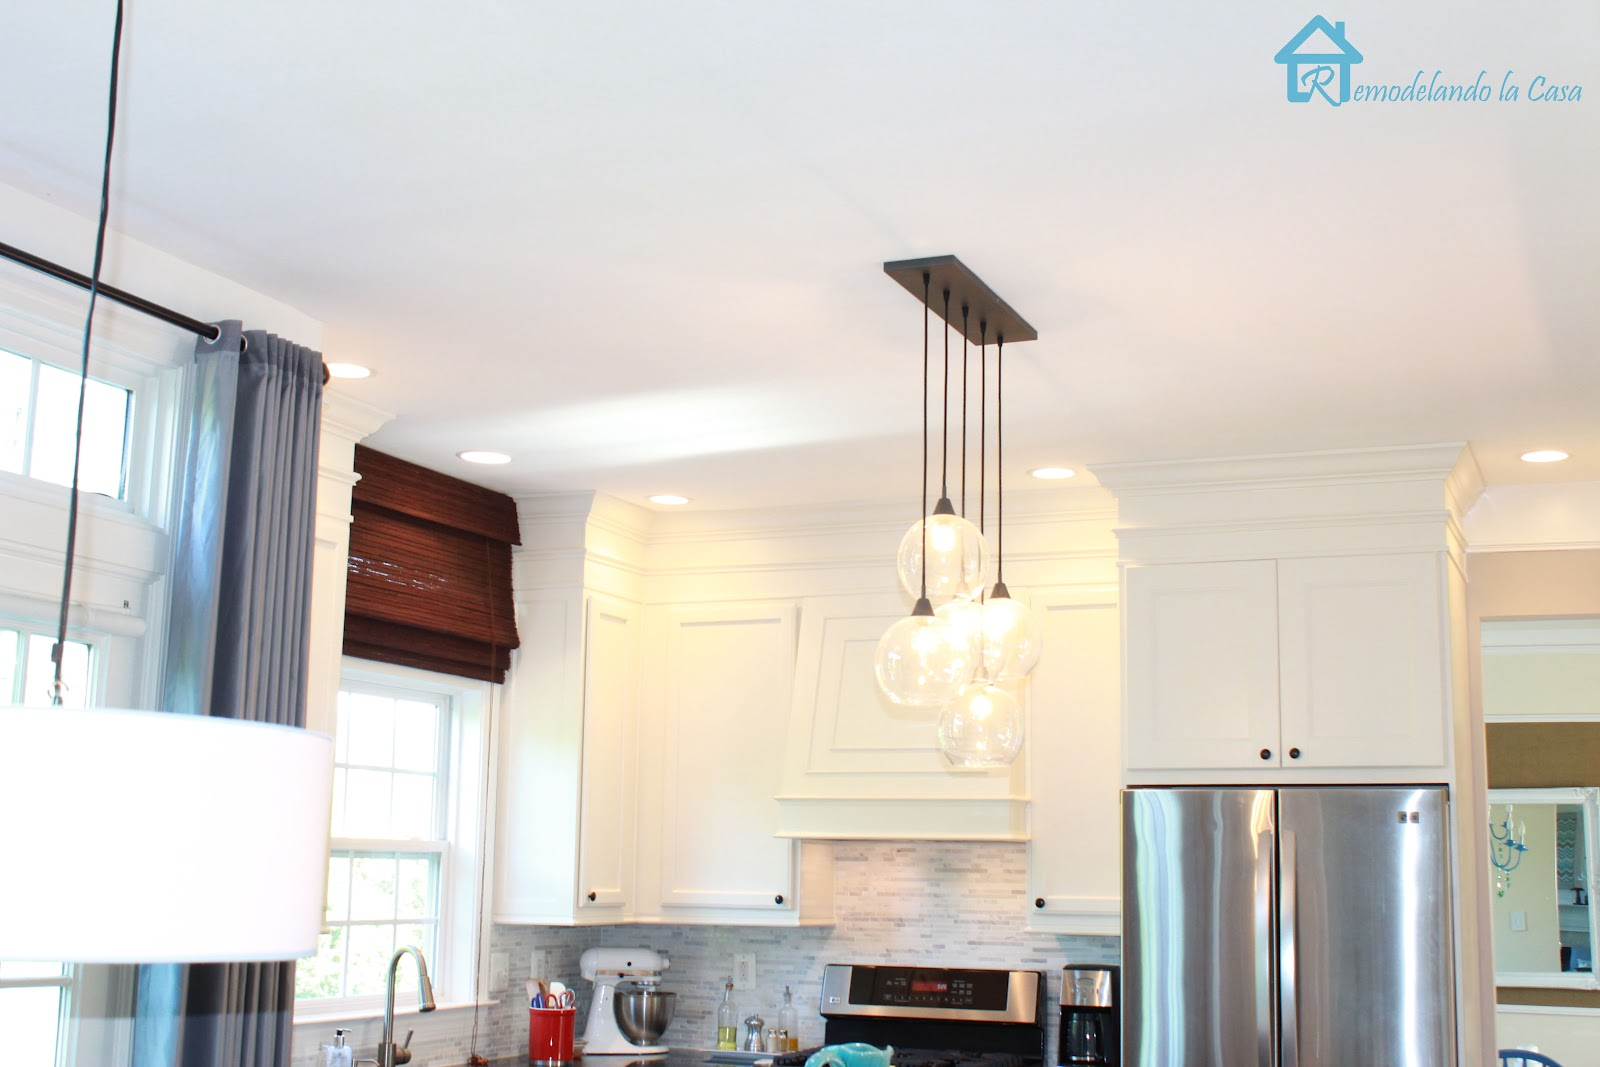 Remodelando la casa thinking about installing recessed lights how to install recessed lights arubaitofo Choice Image